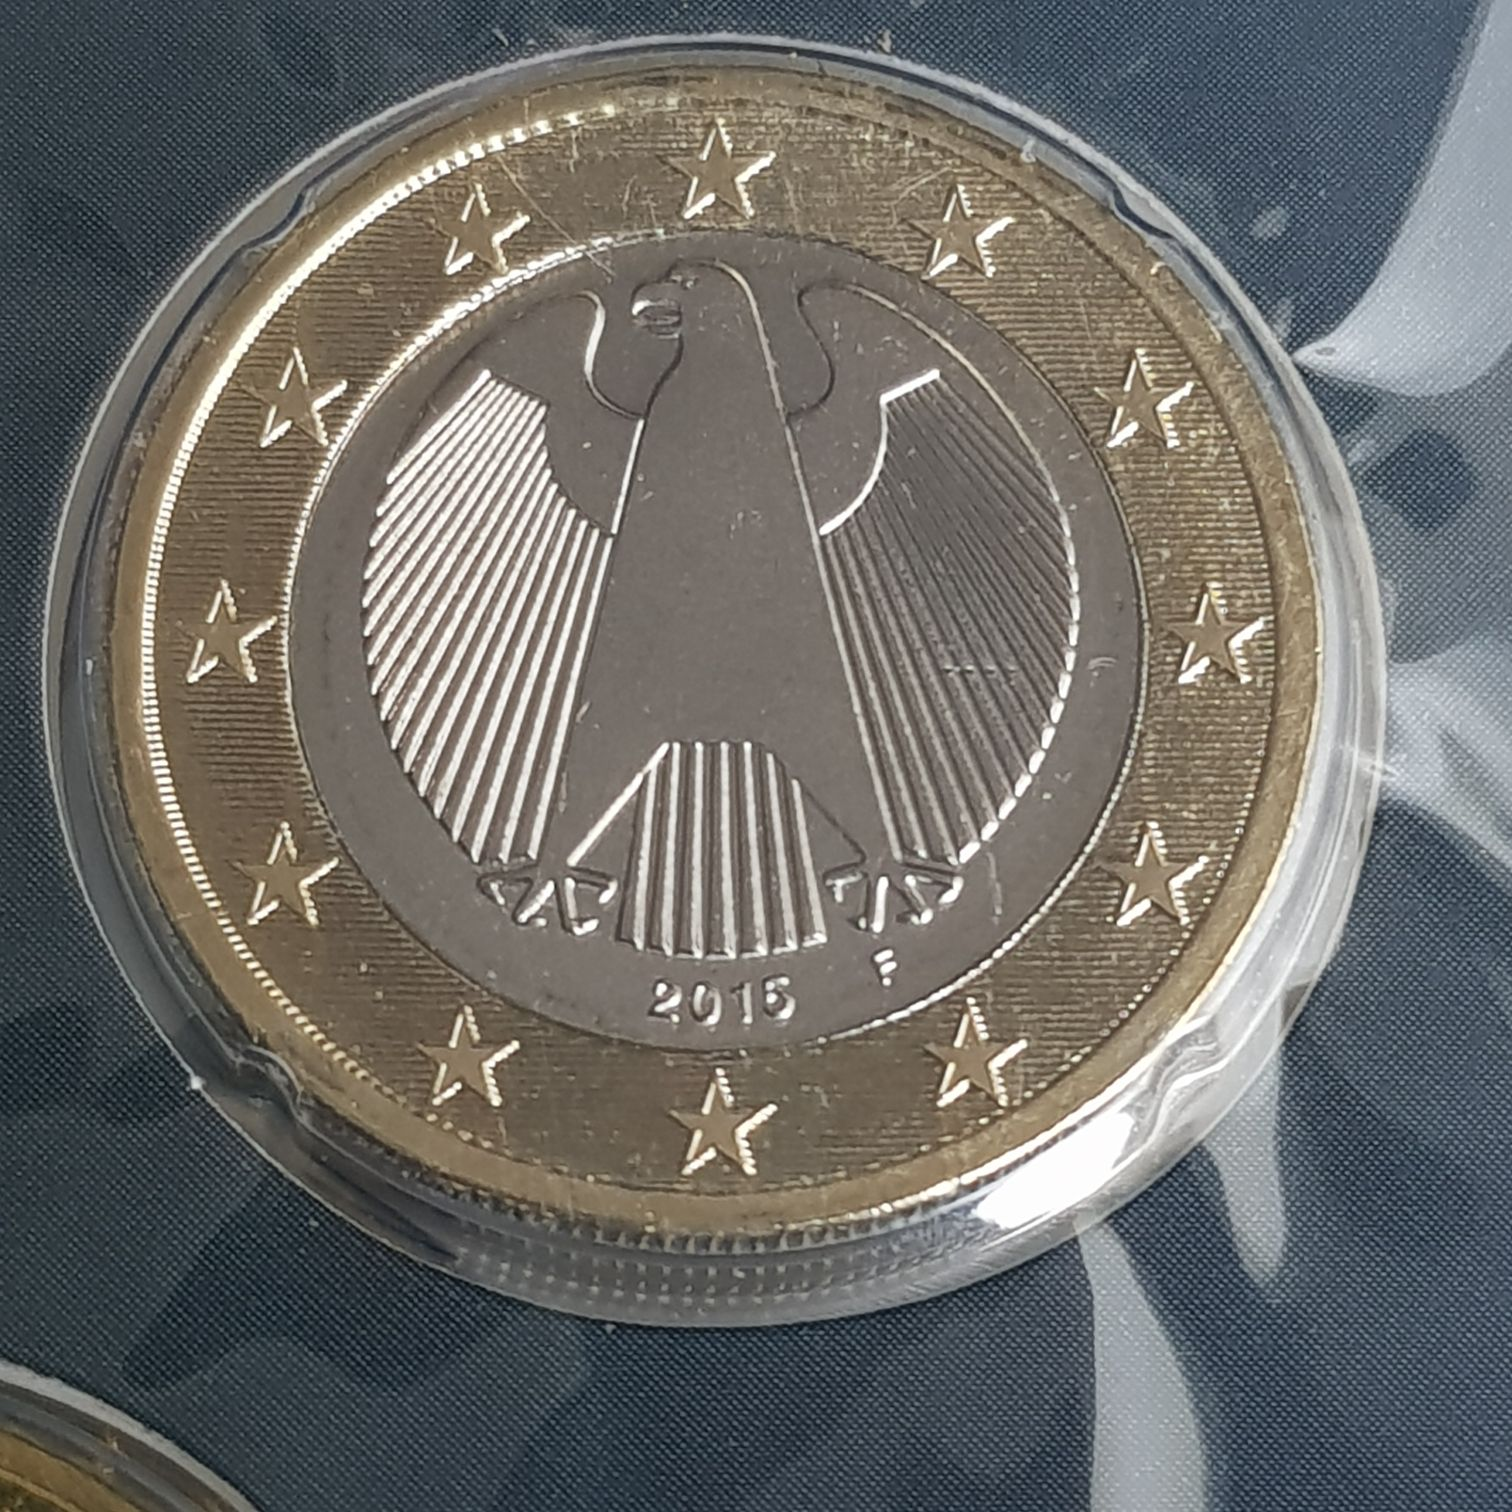 1 Euro Coin - $1 (2015) back image (back cover, second image)